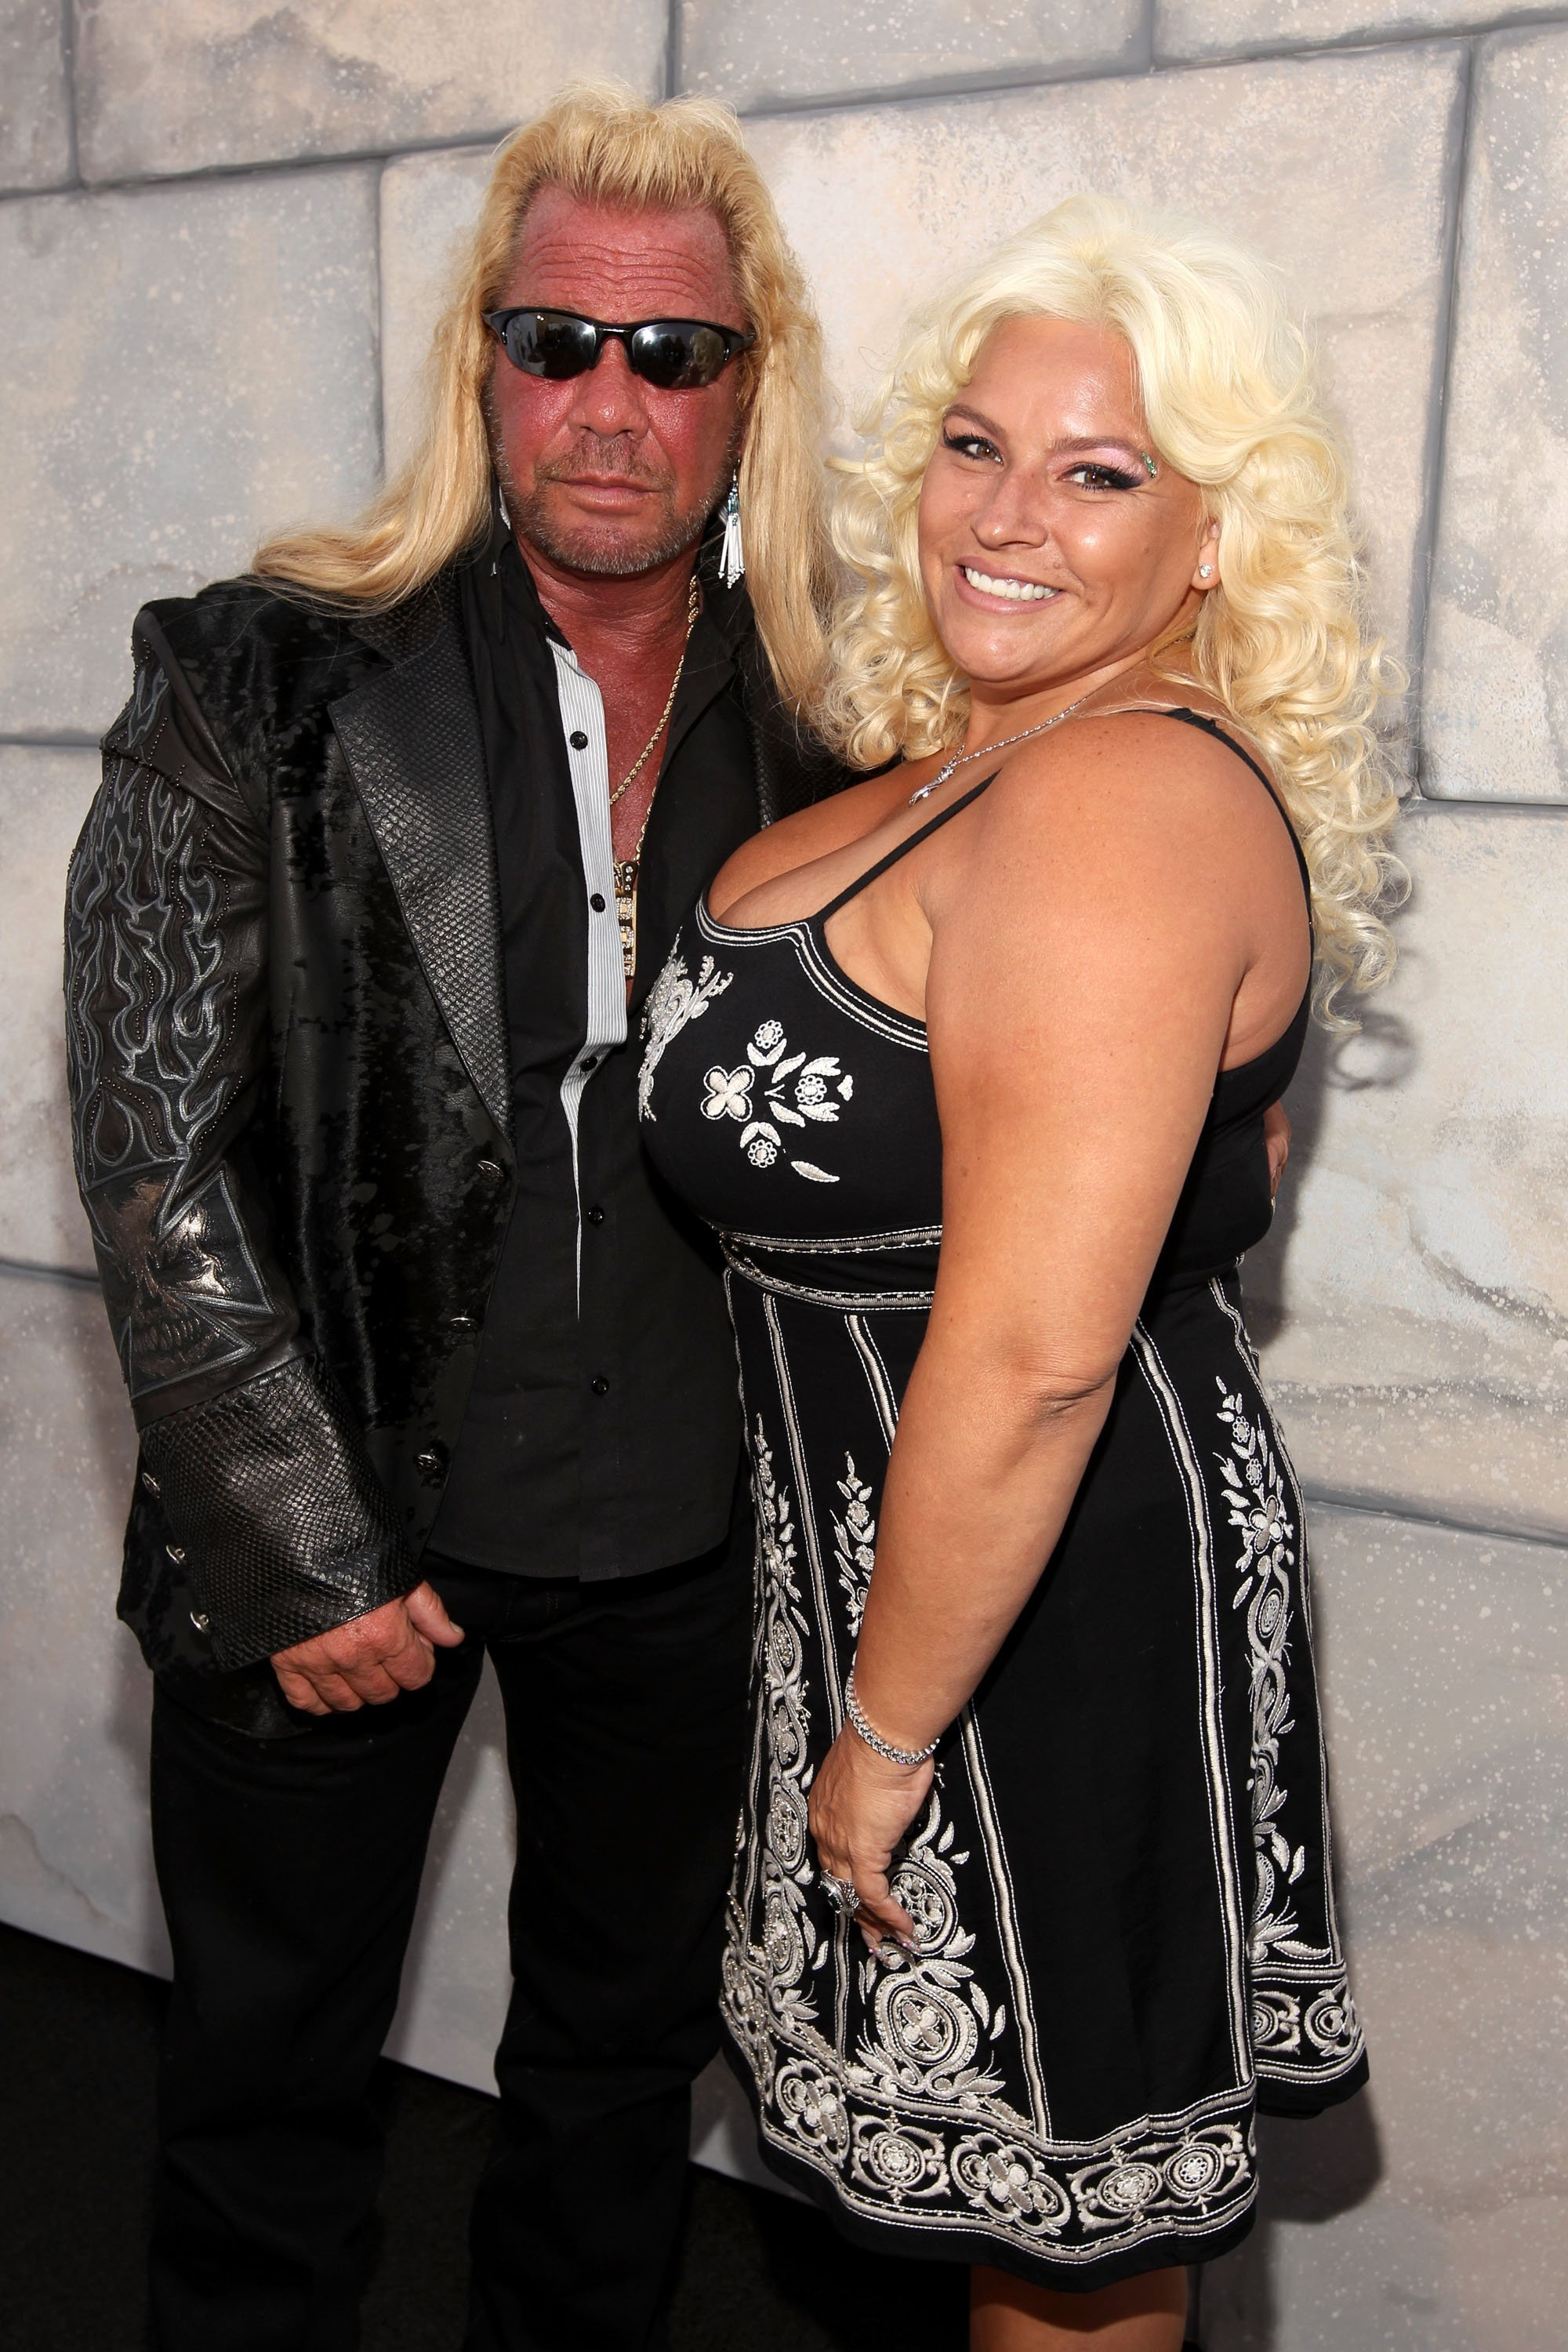 Duane 'Dog' and Beth Chapman at Comedy Central's Roast of Charlie Sheen held at Sony Studios on September 10, 2011 in Los Angeles, California   Photo: Getty Images